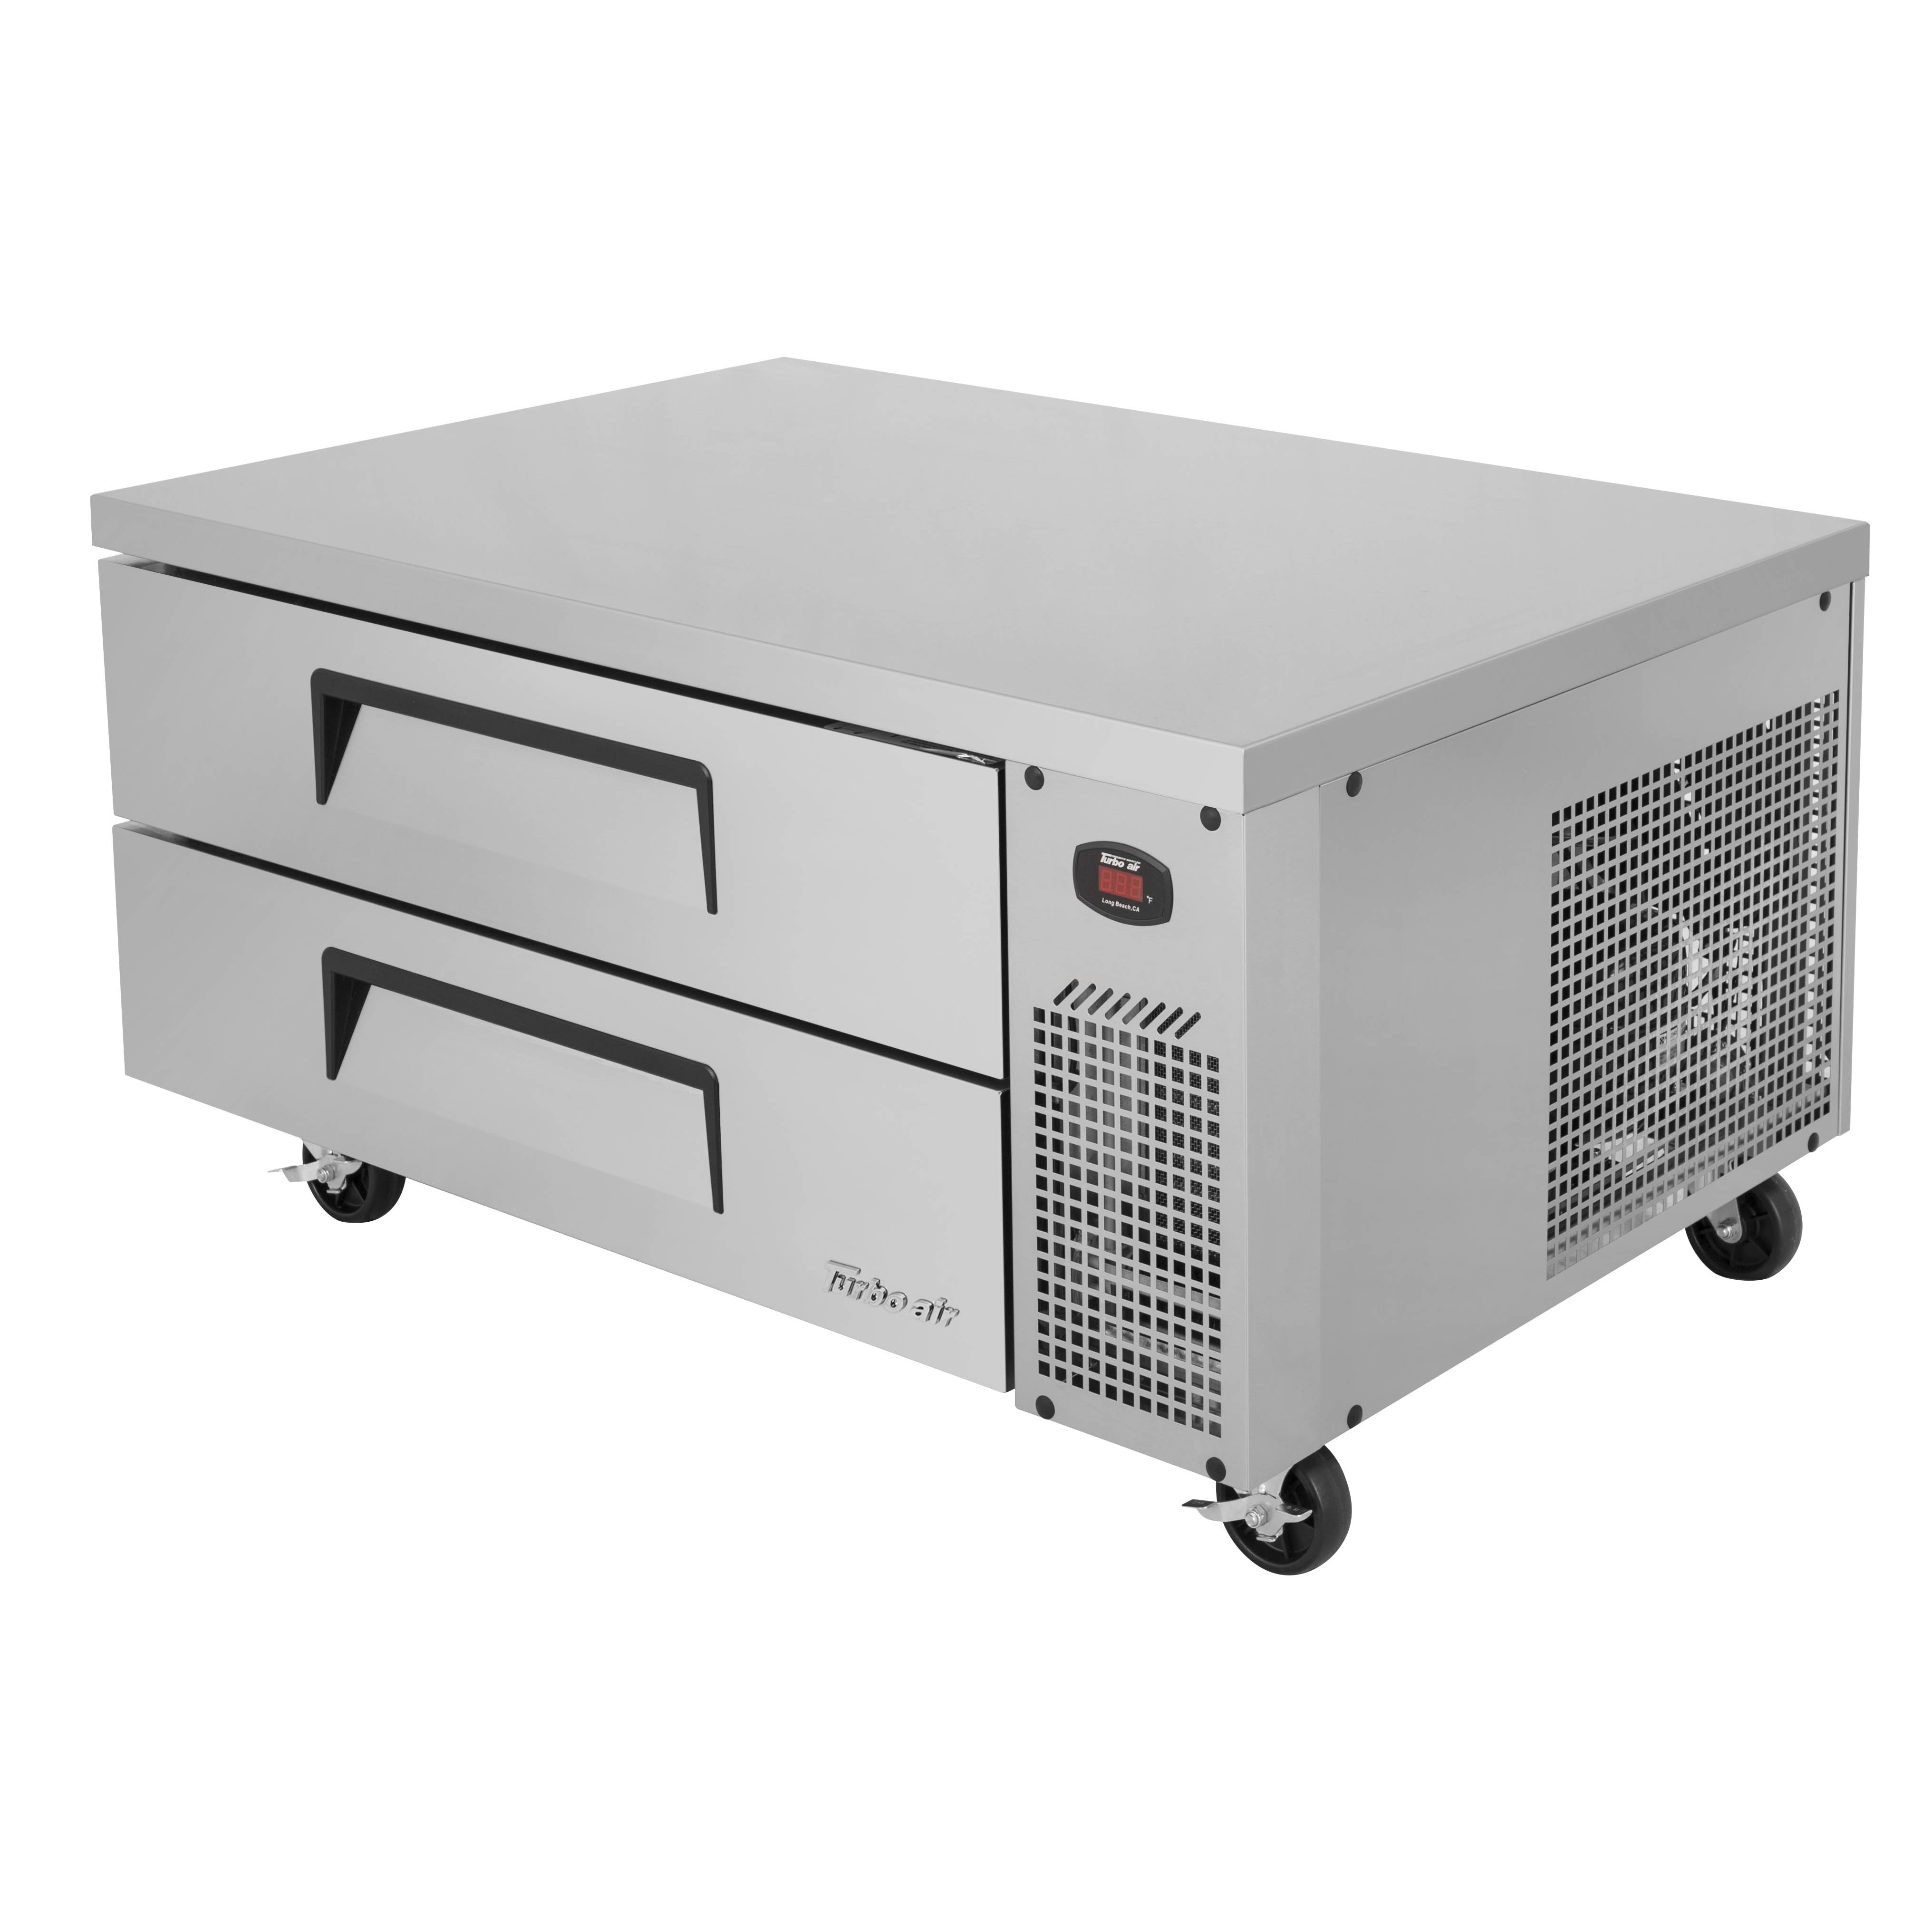 Turbo Air TCBE-48SDR-N equipment stand, refrigerated base